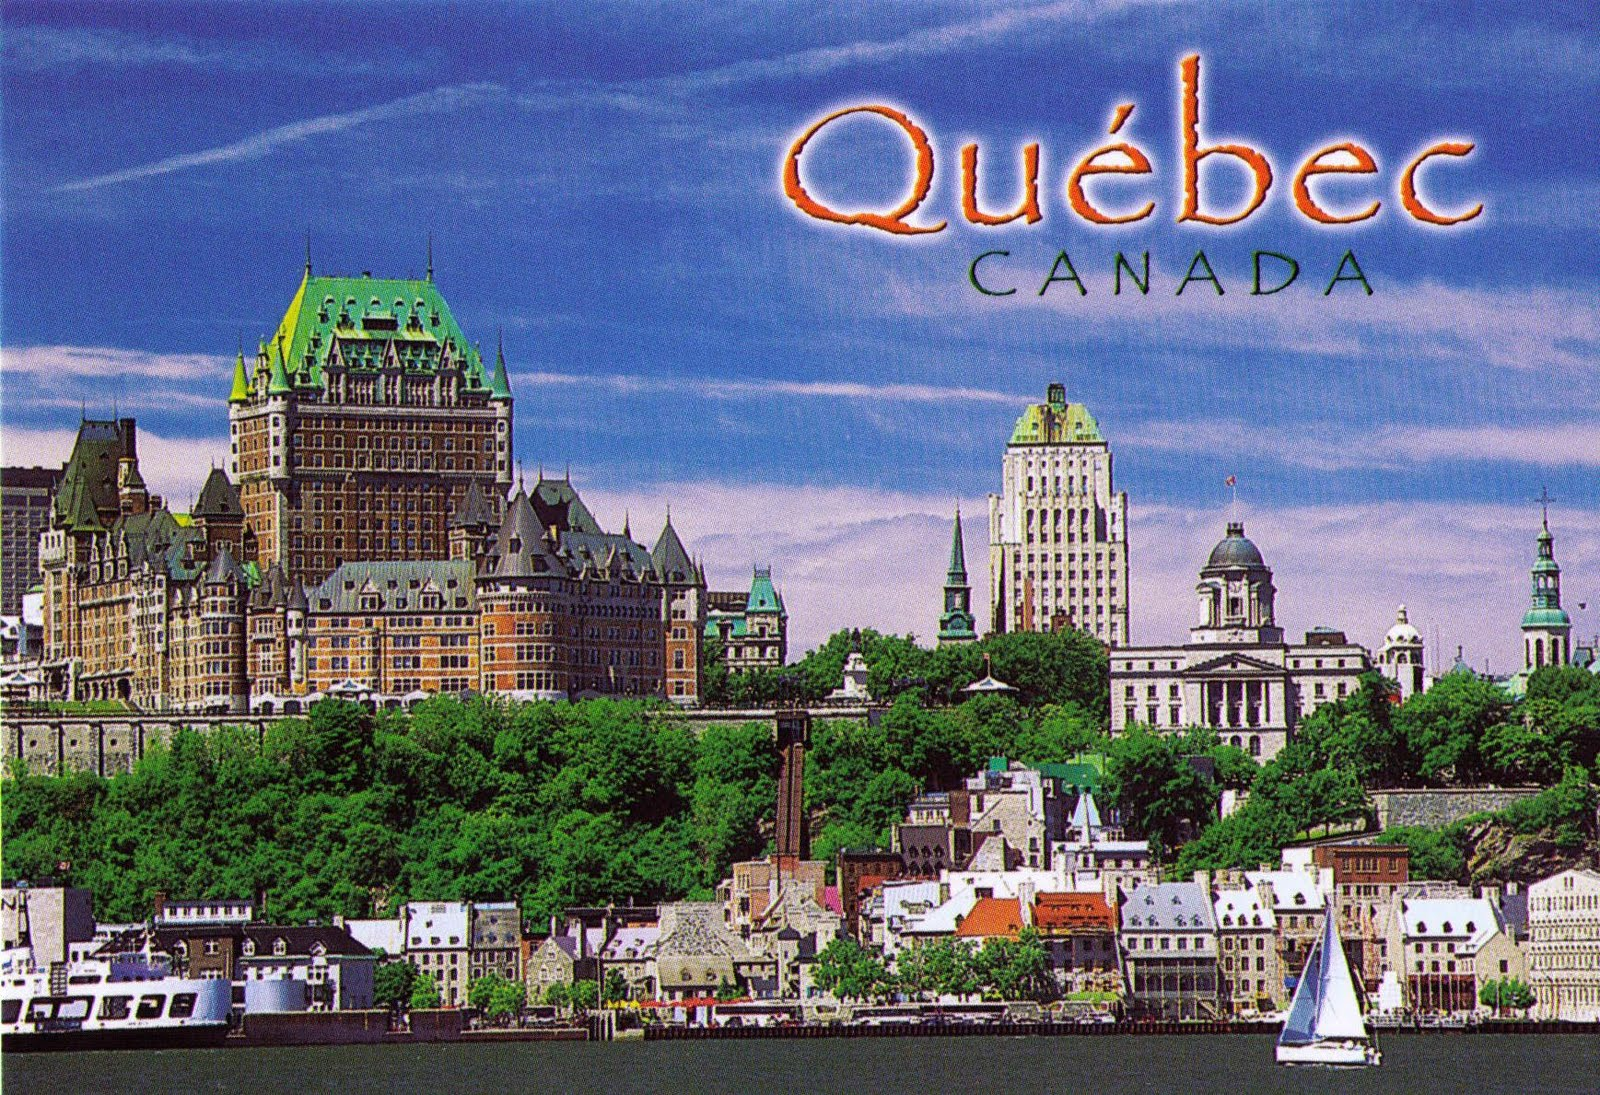 from Kieran gay quebec city canada